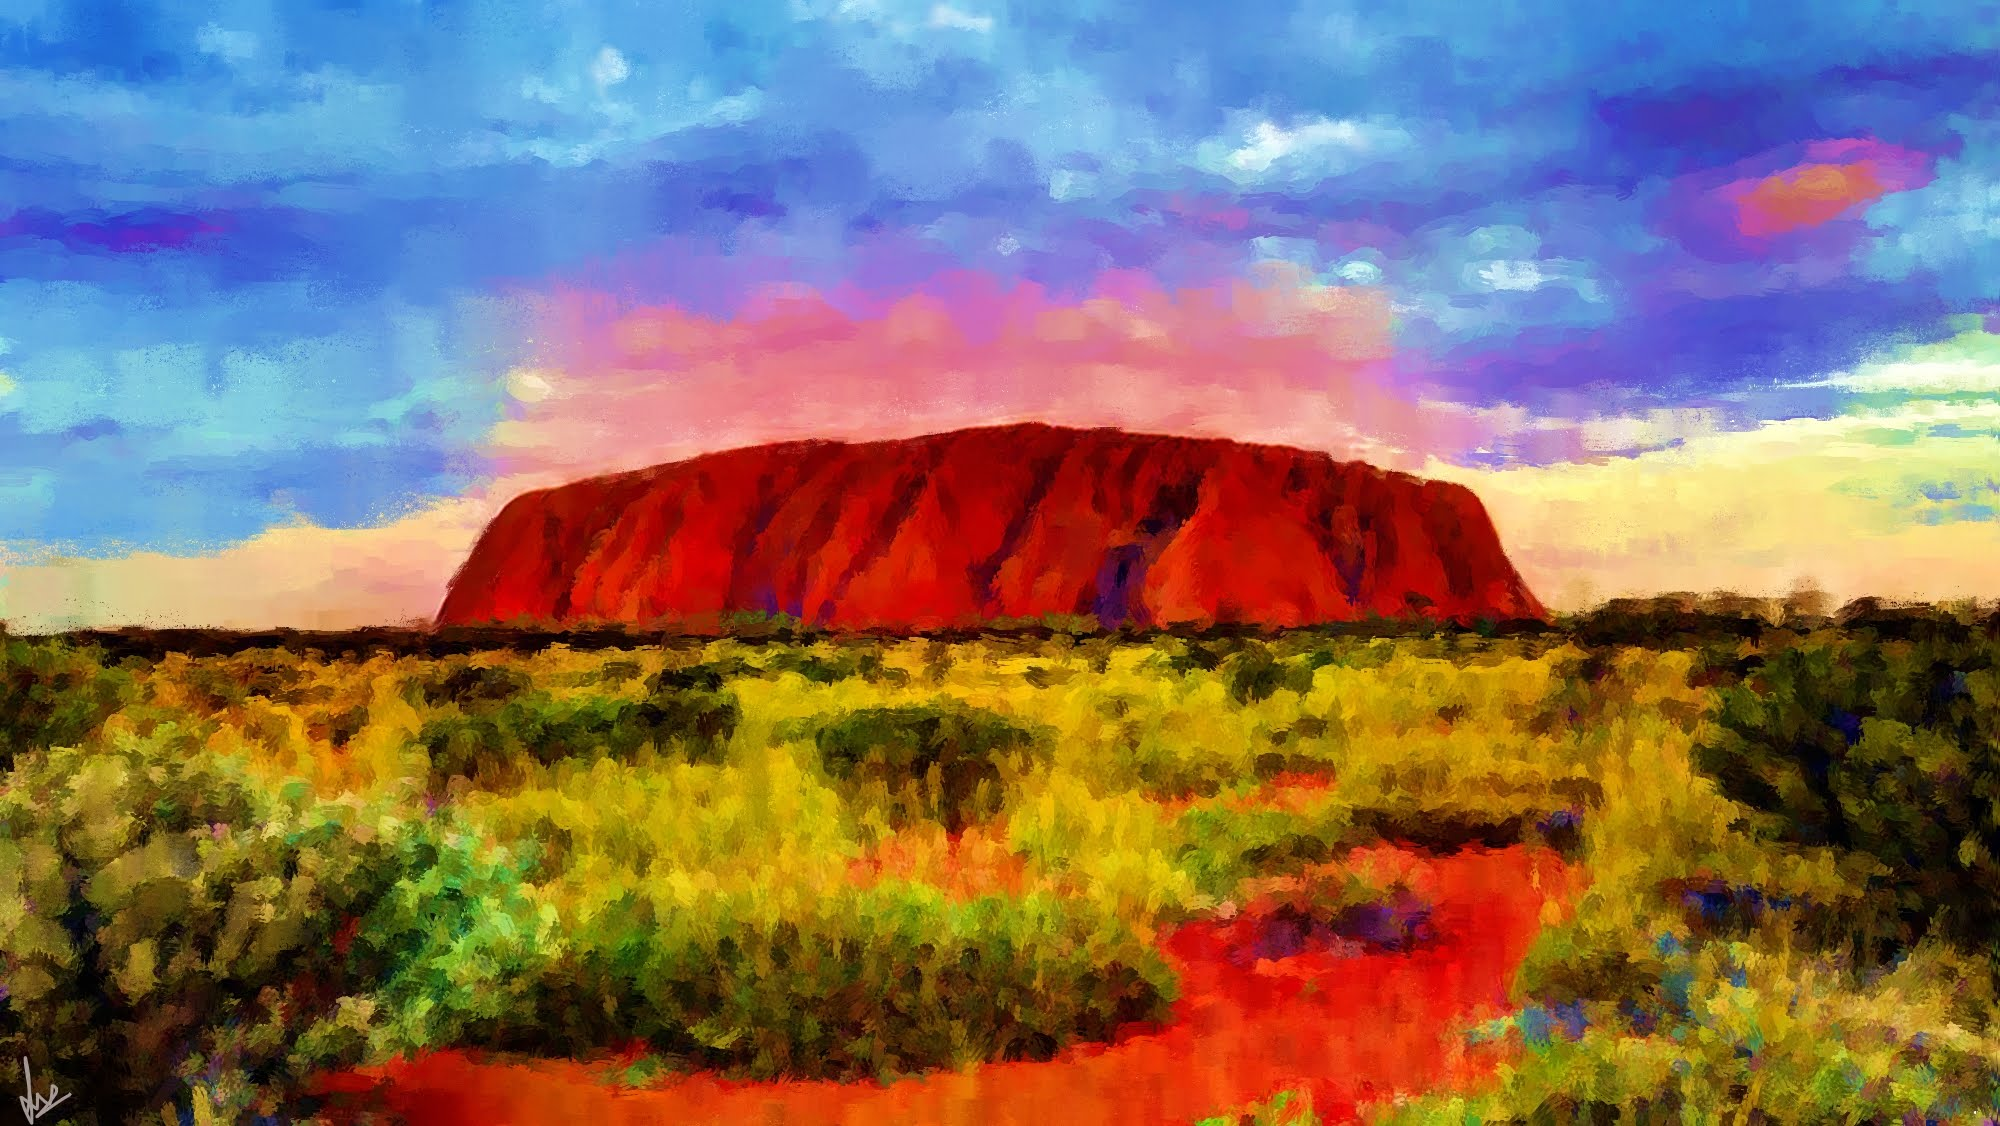 Ayer's Rock, Uluru, Northern Territory, Australia - Digital Painting by Shaalyn Monteiro